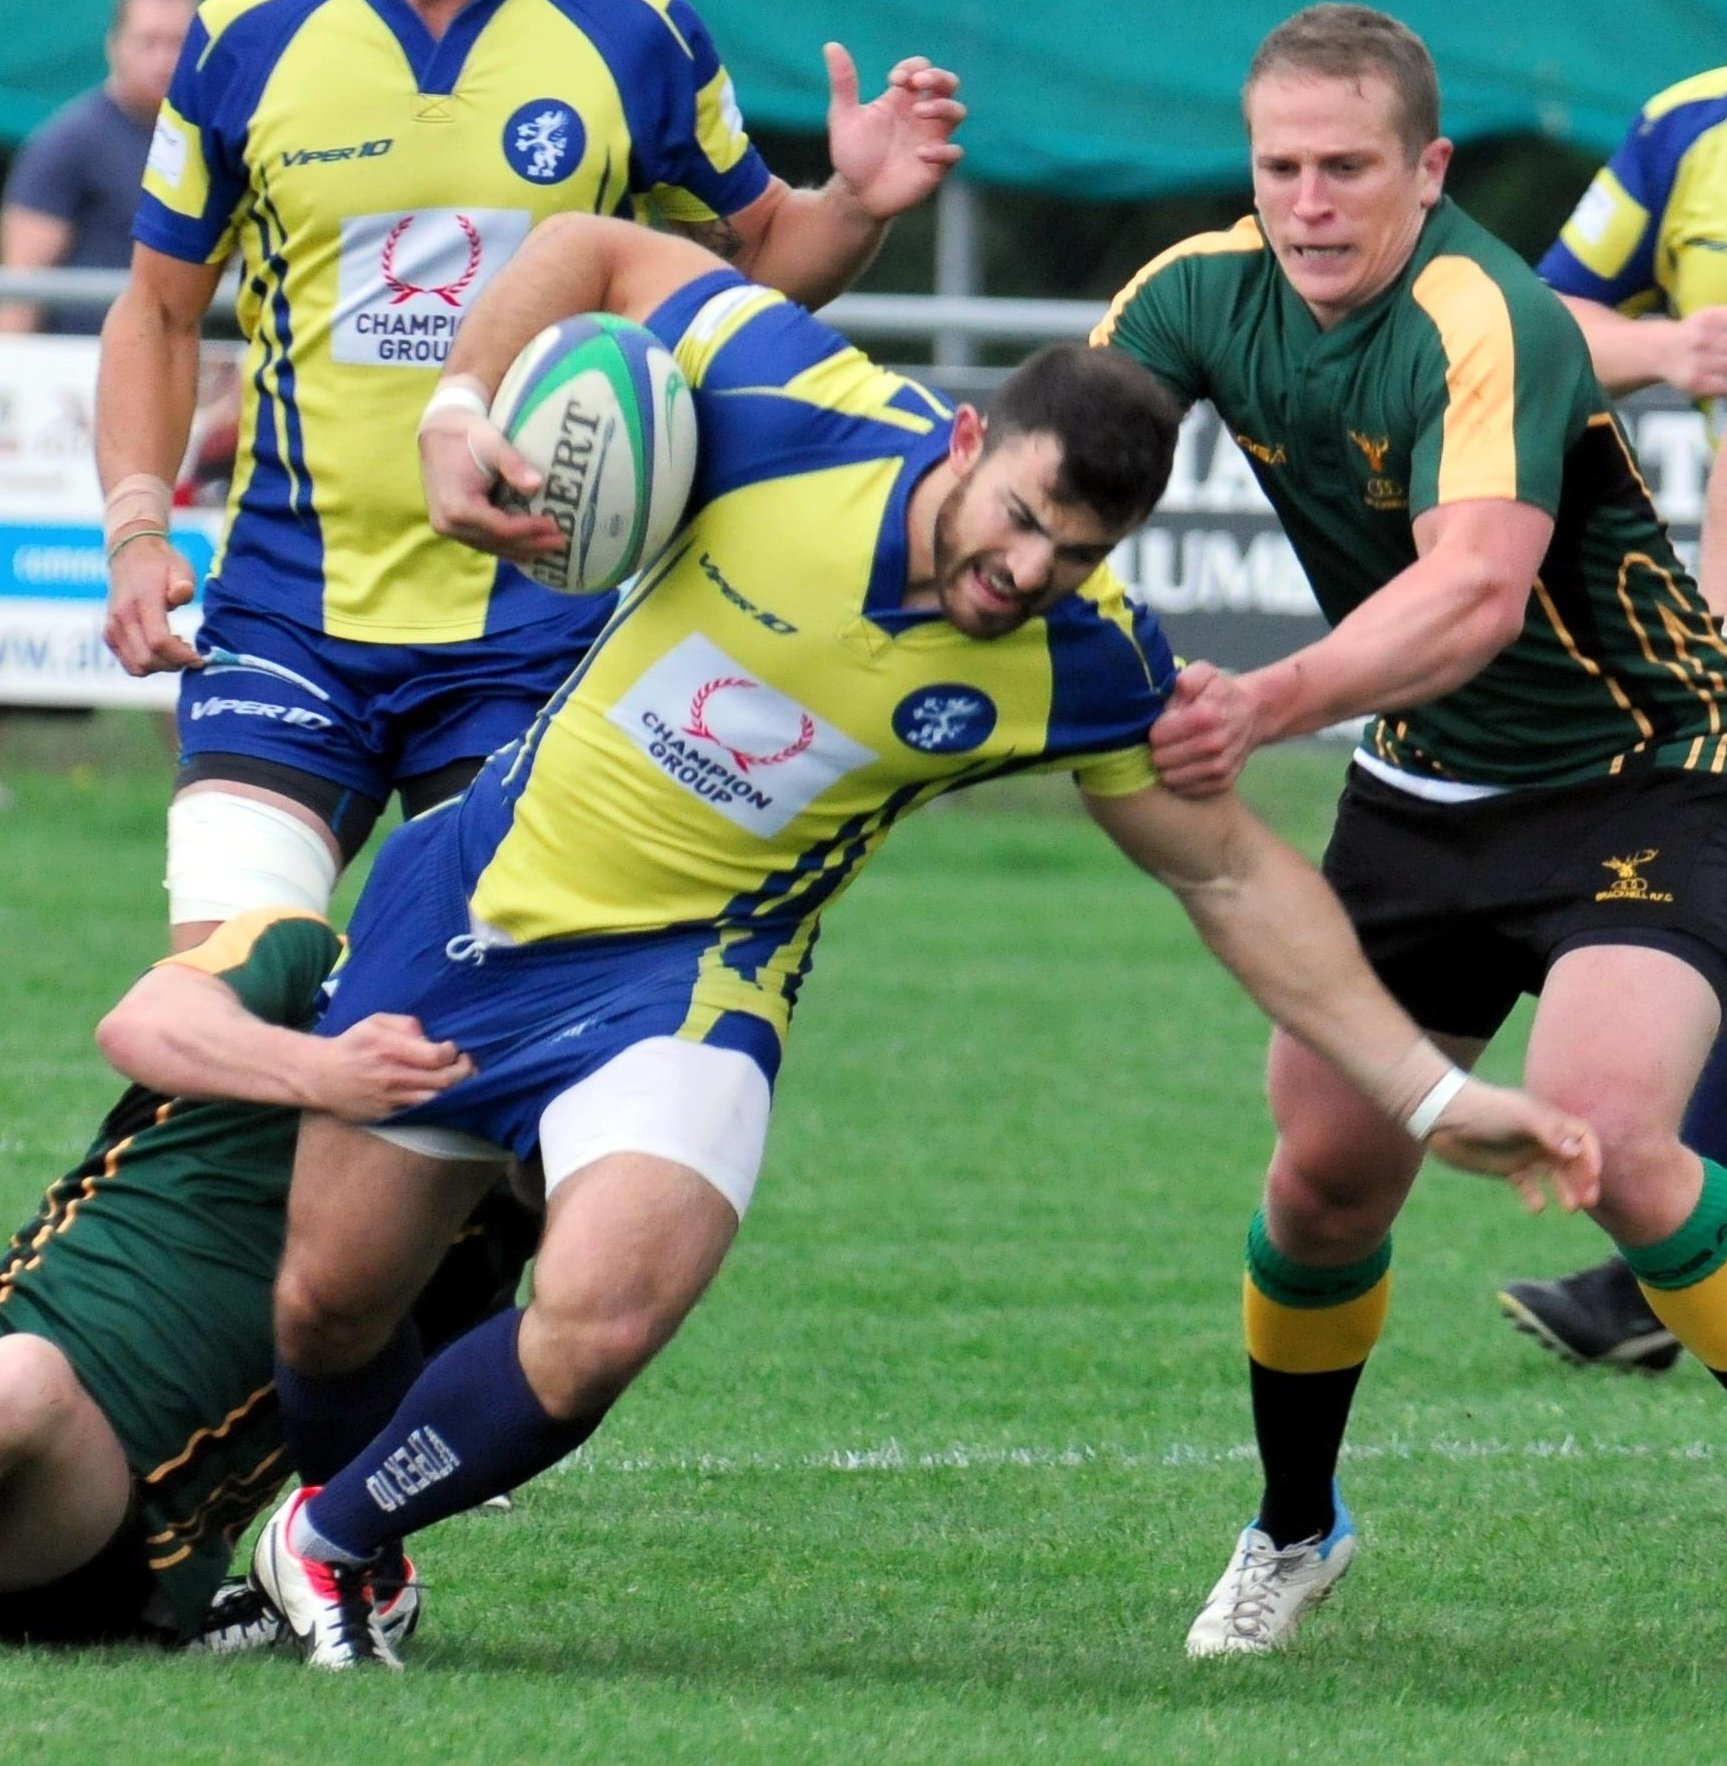 Tim Richards scored two tries as Basingstoke RFC recorded a comfortable victory over Barking.